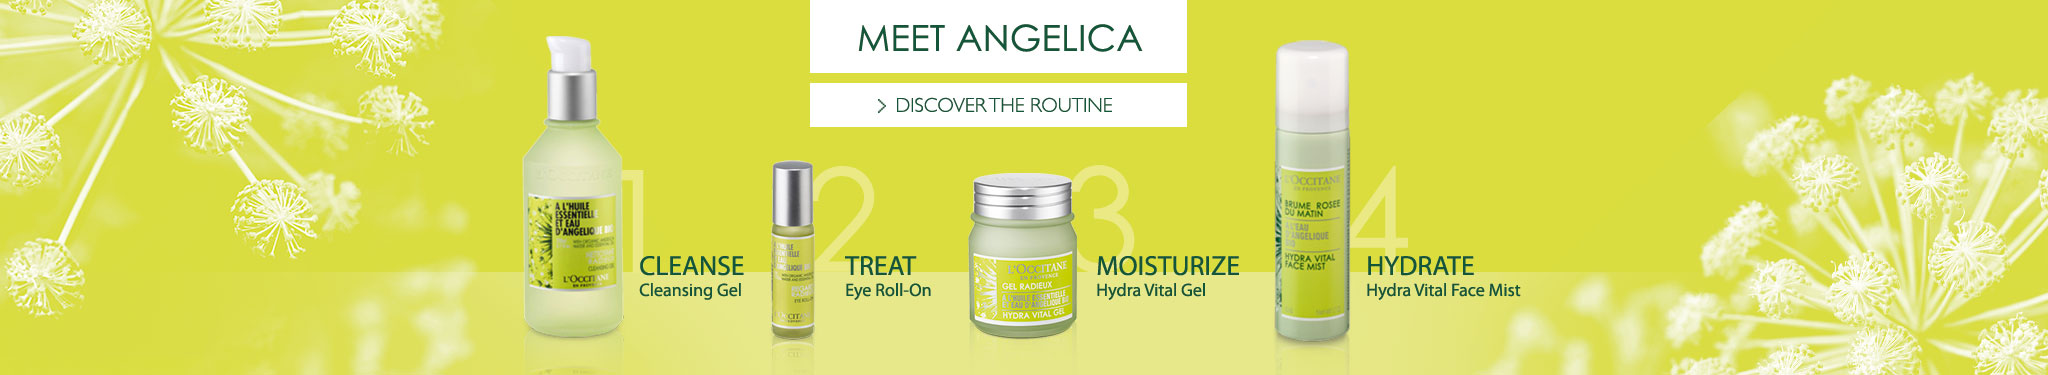 Angelica Routine